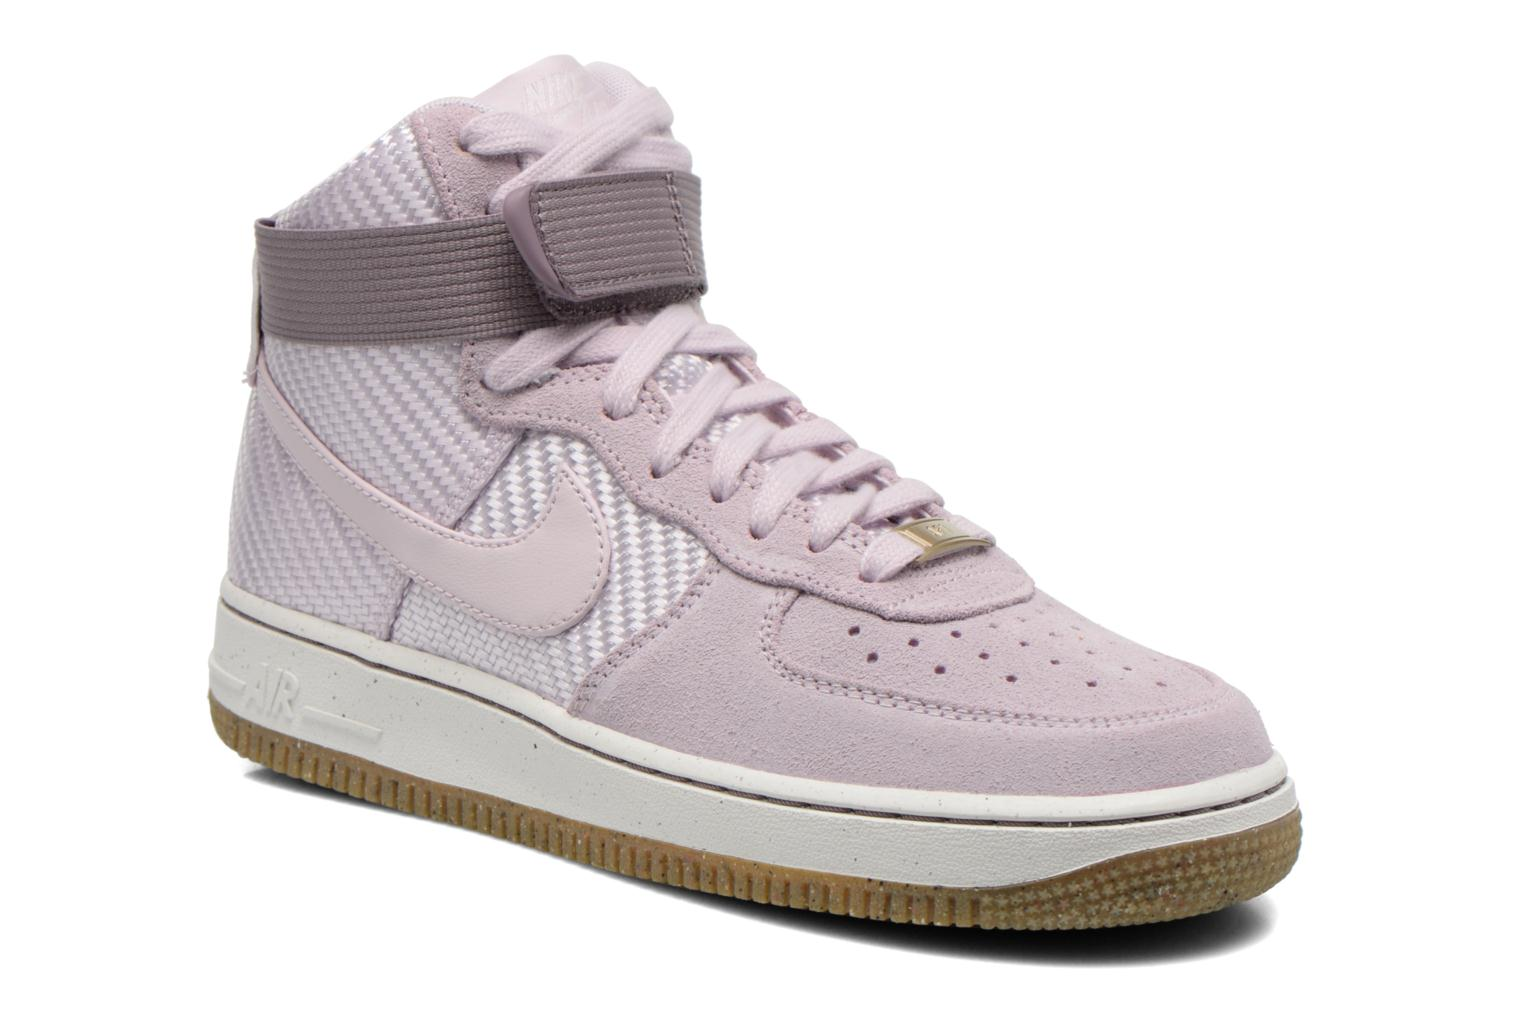 Sneakers Wmns Air Force 1 Hi Prm by Nike